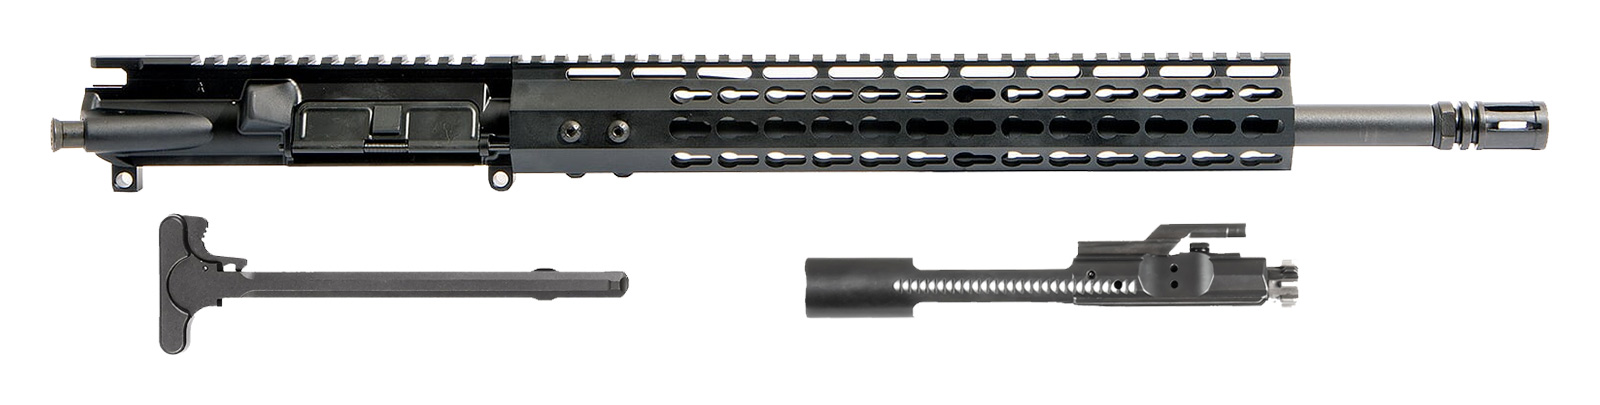 complete-ar-15-upper-assembly-16-5-56-x-45-bcg-chh-included-13-cbc-keymod-gen-2-ar-15-handguard-rail-2